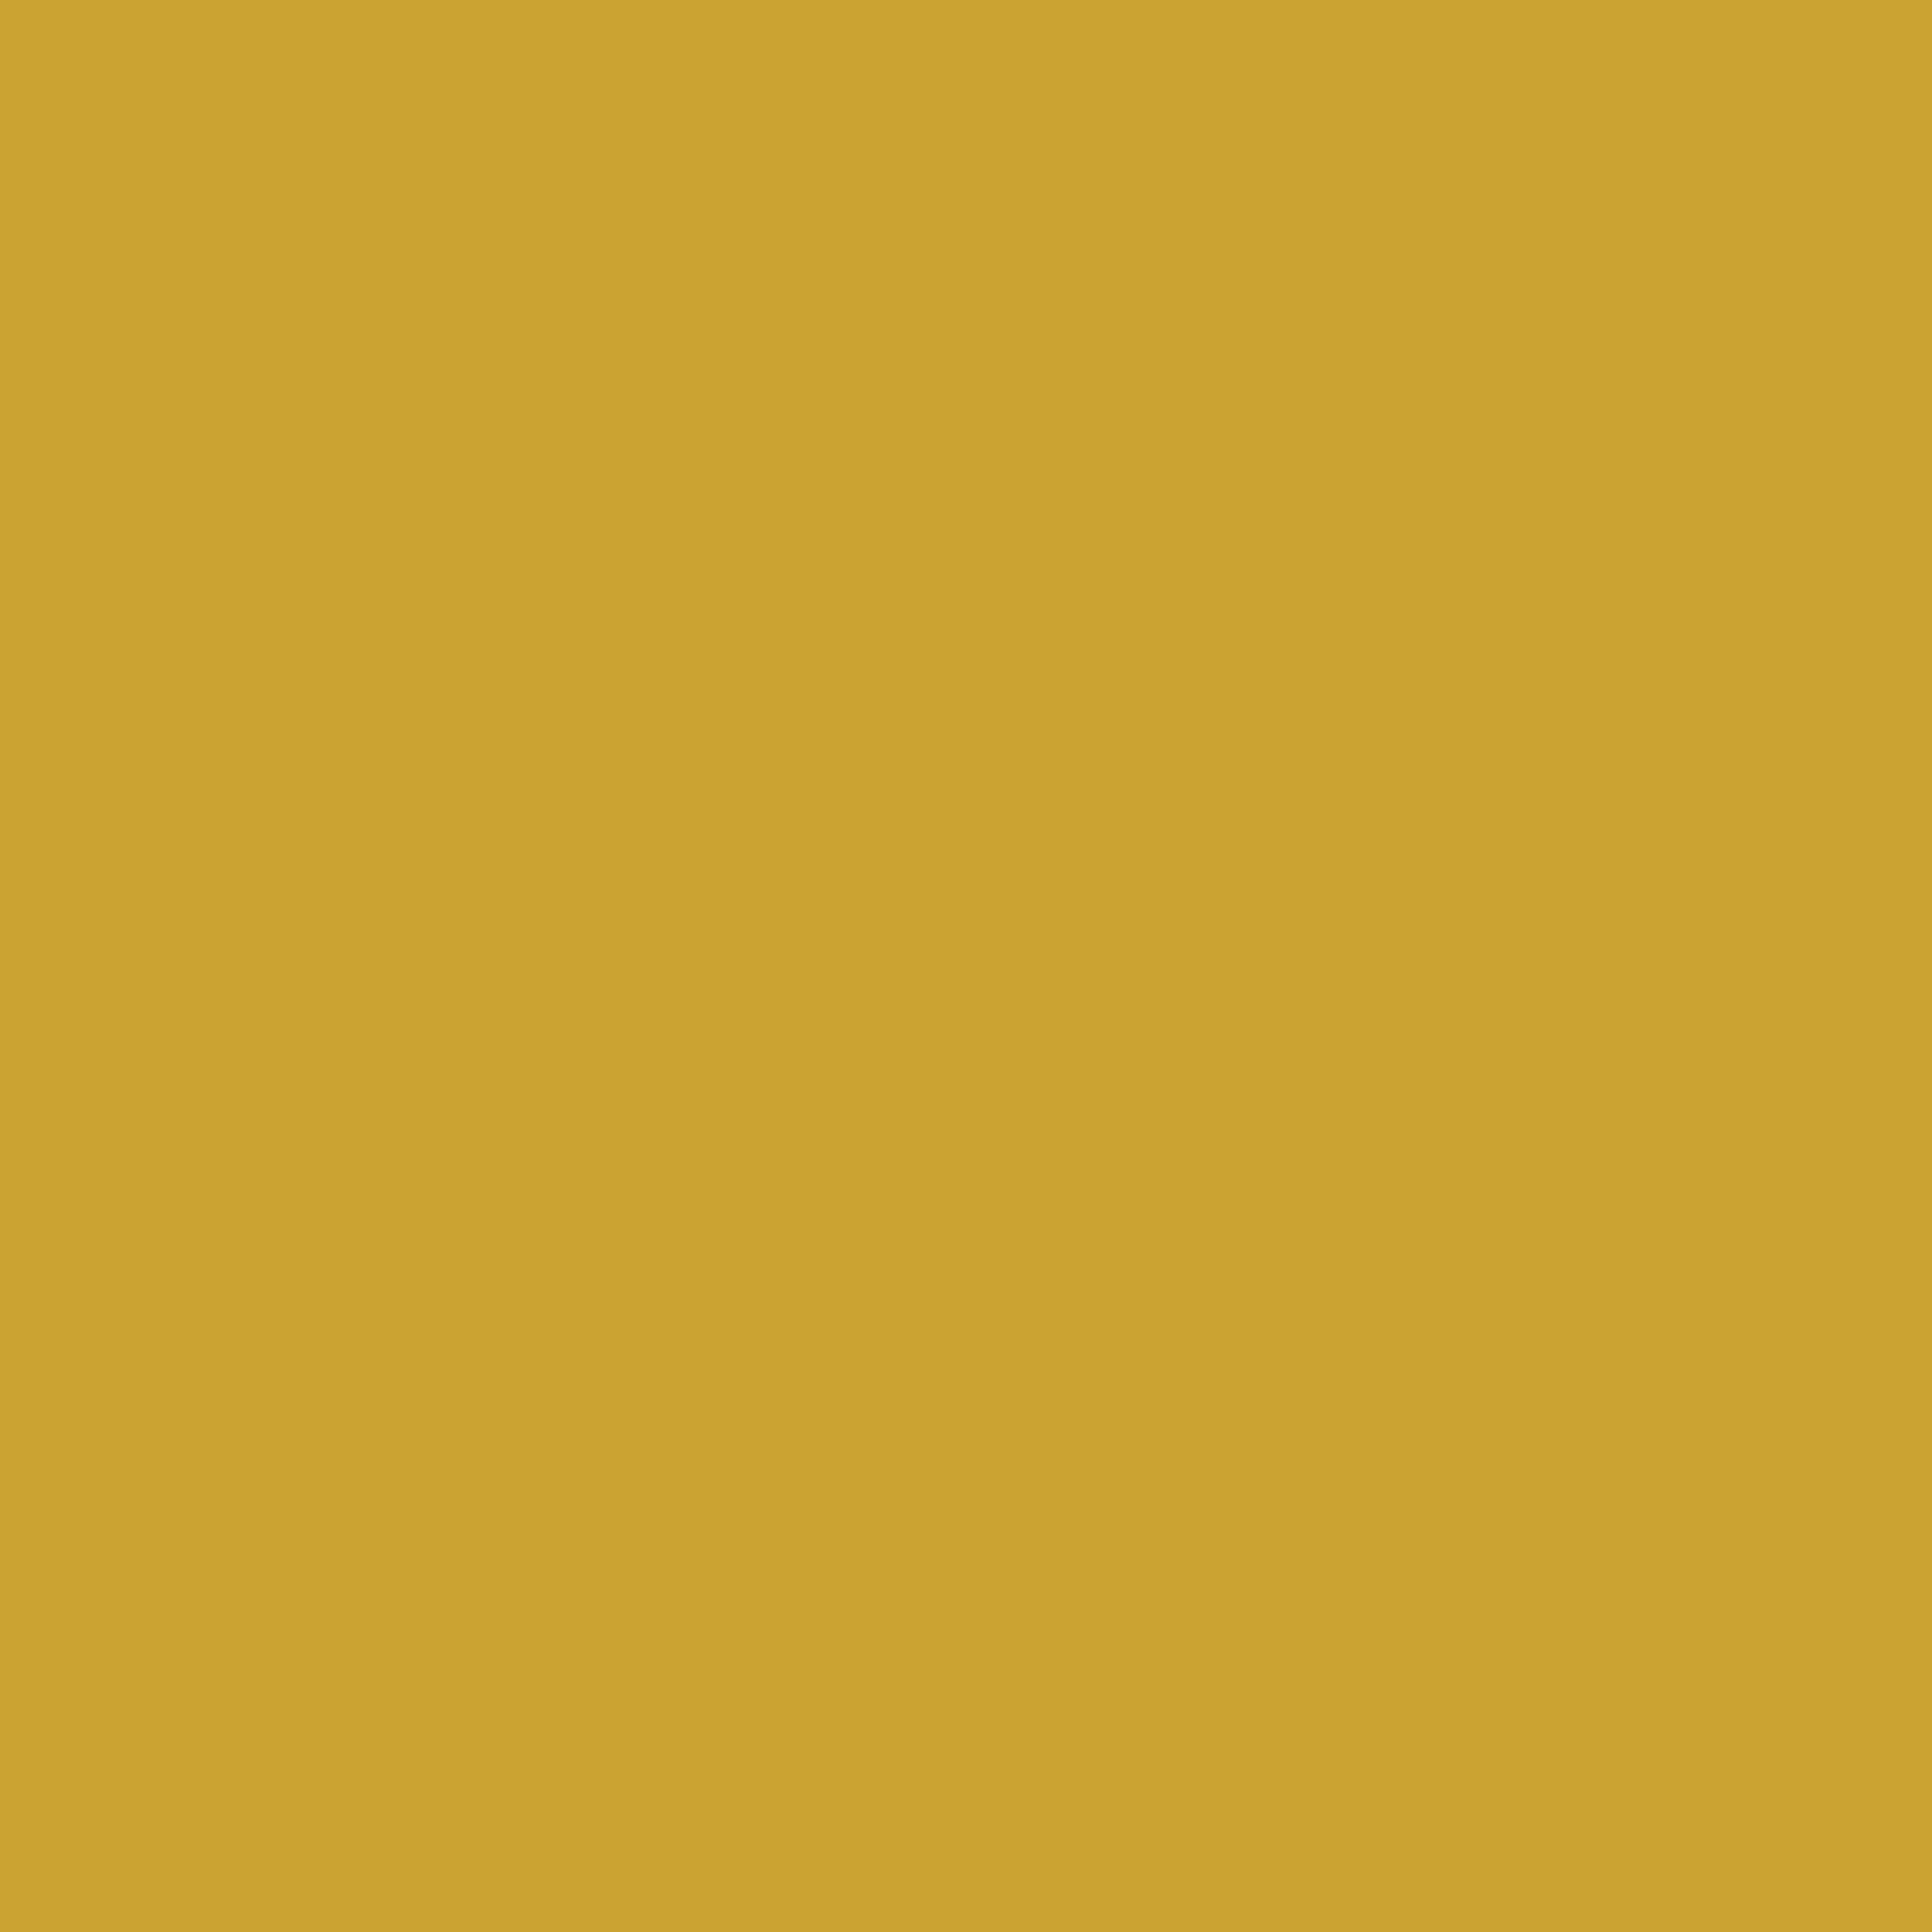 2732x2732 Satin Sheen Gold Solid Color Background